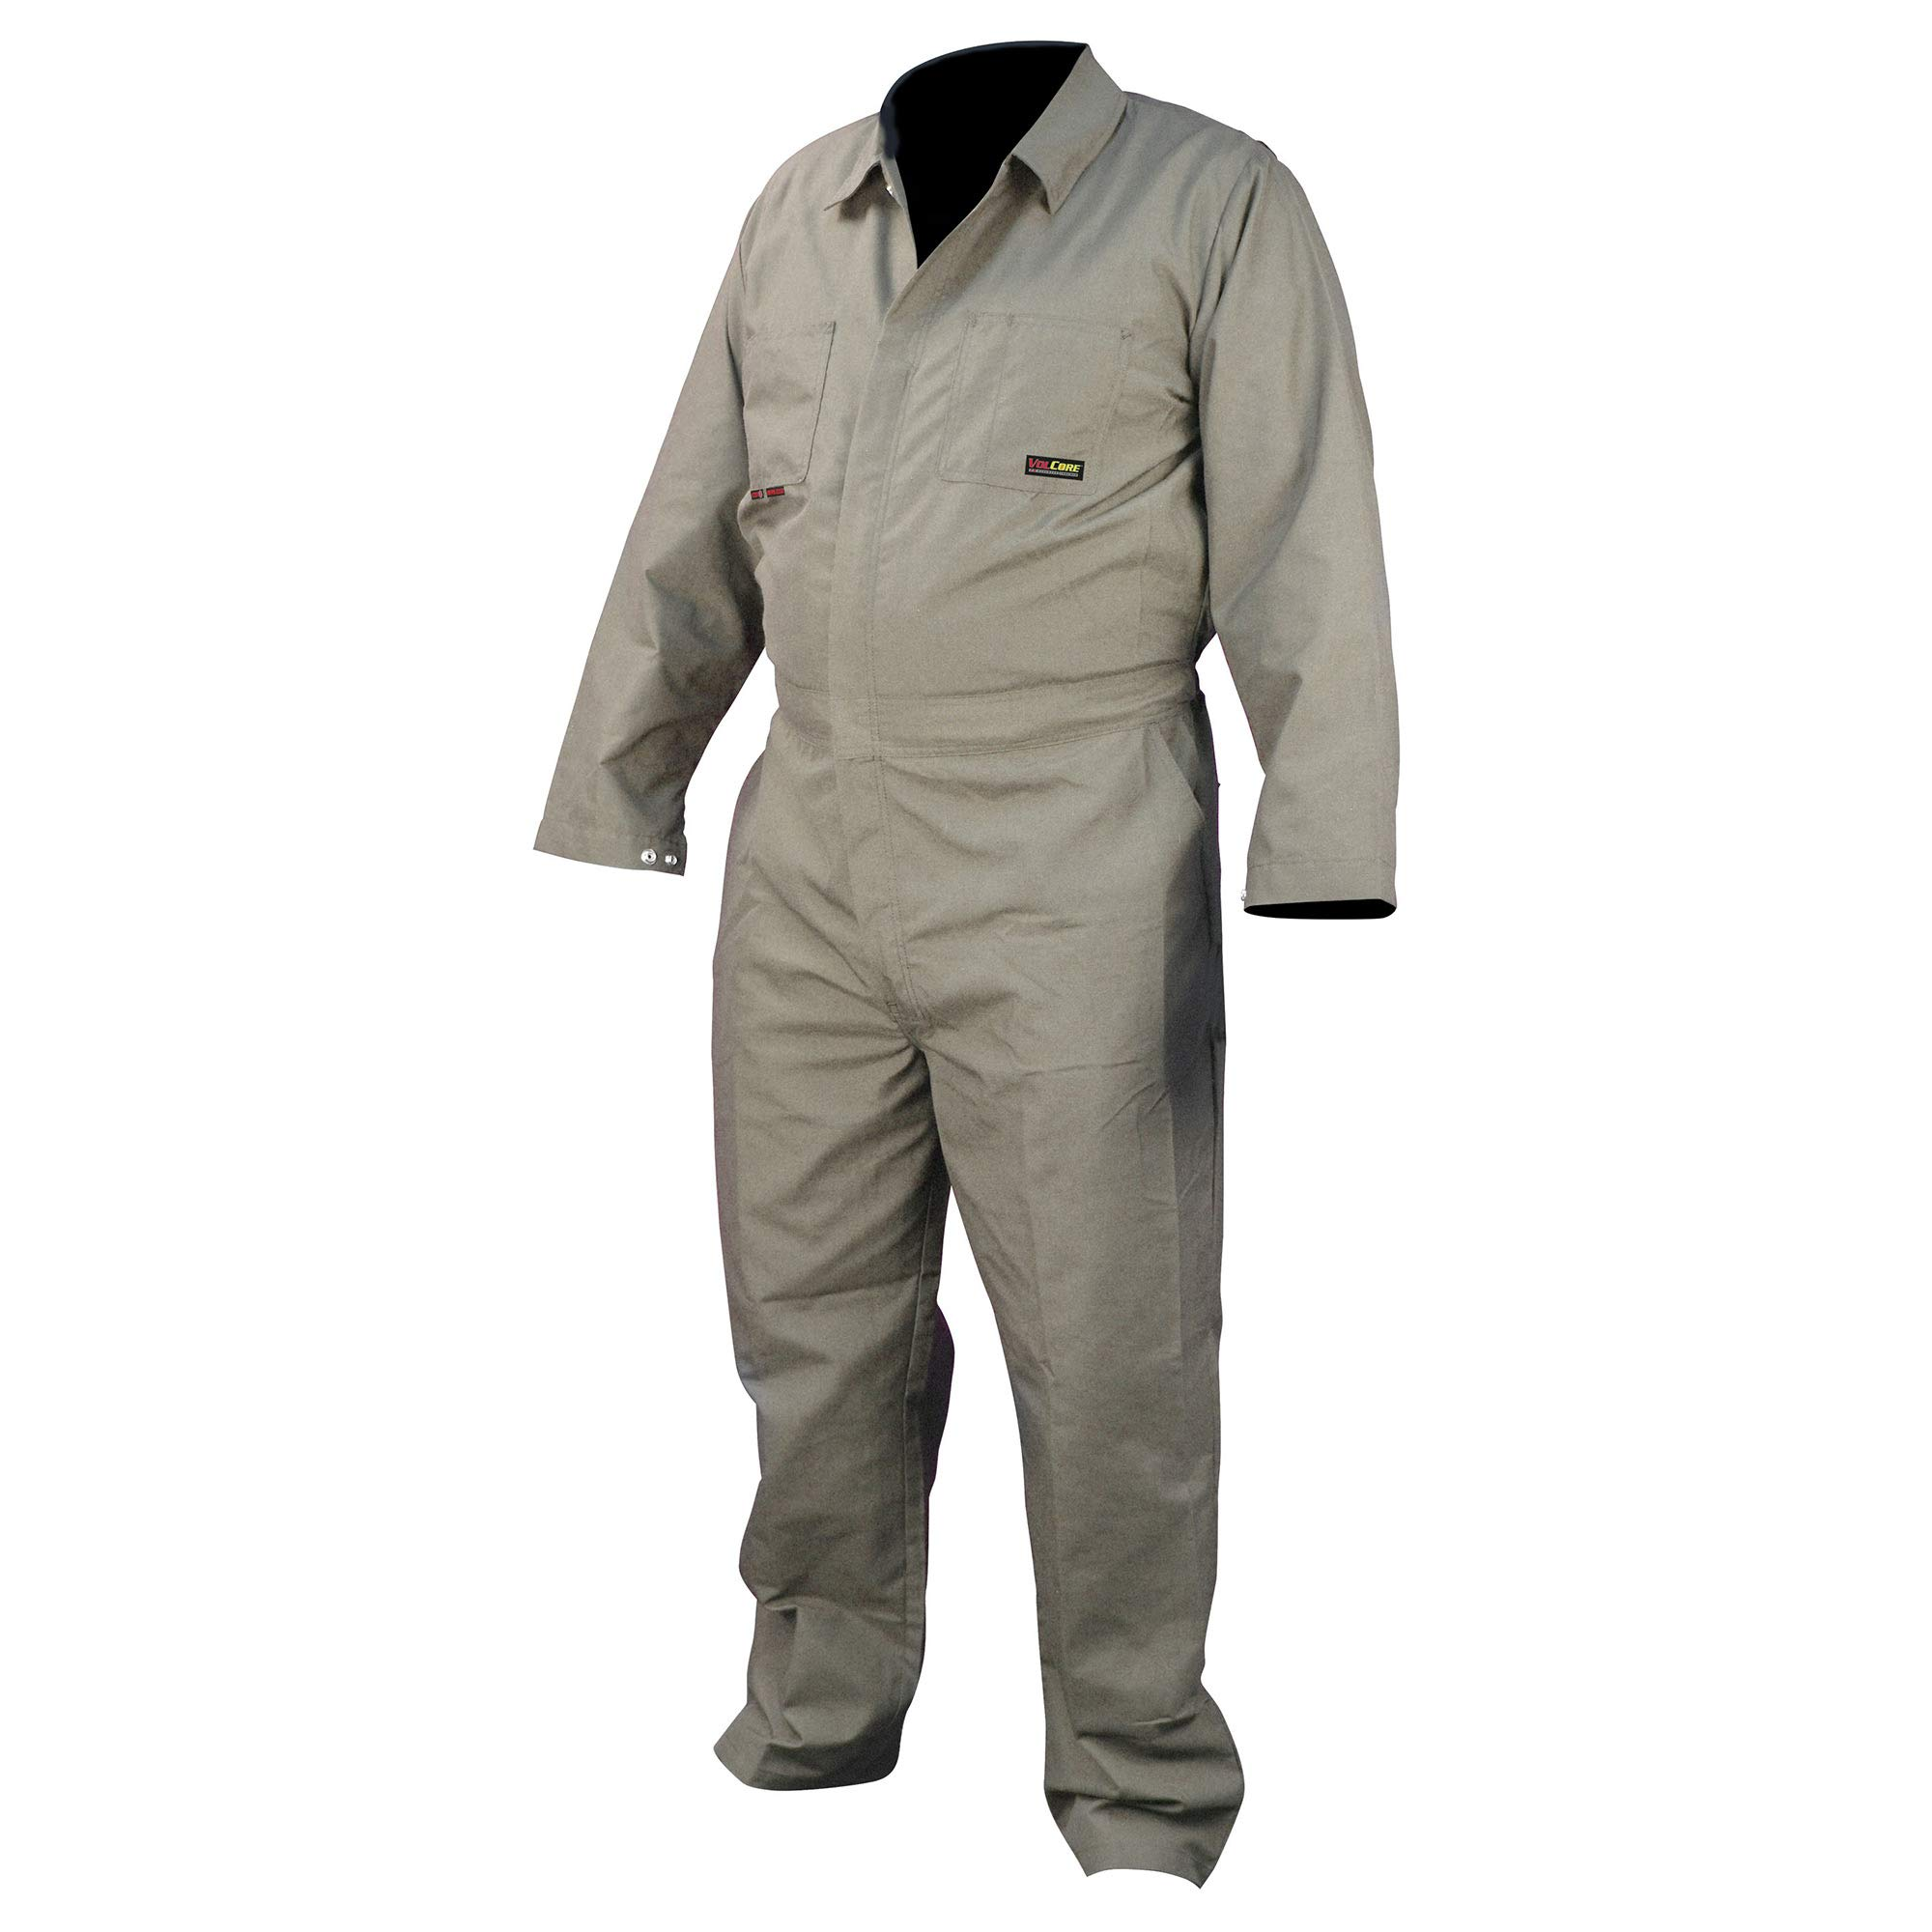 FRCA-002 VolCore Cotton FR Coverall